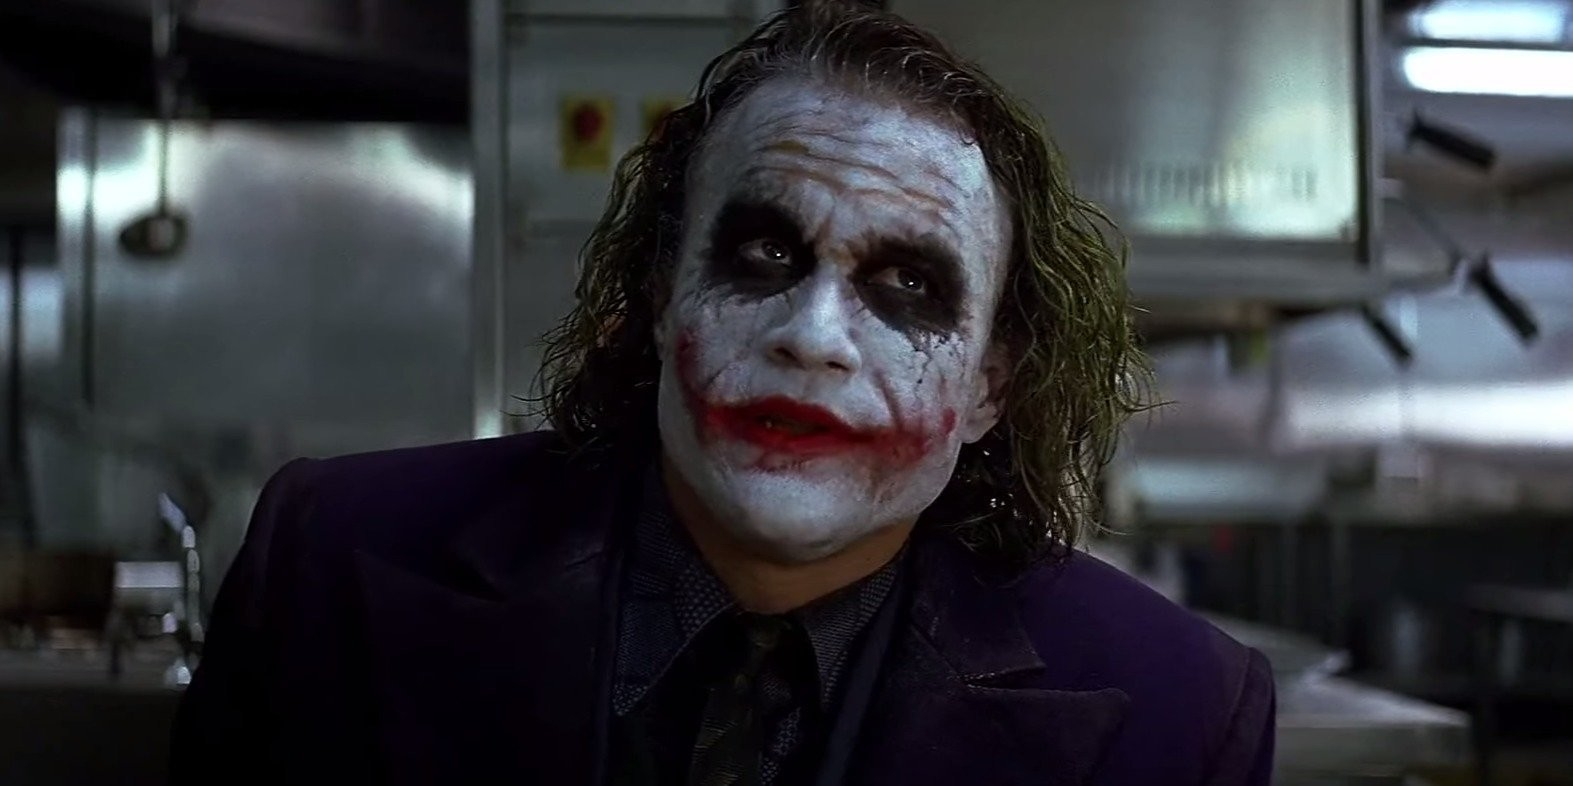 Heath Ledger The Dark Knight (2008)